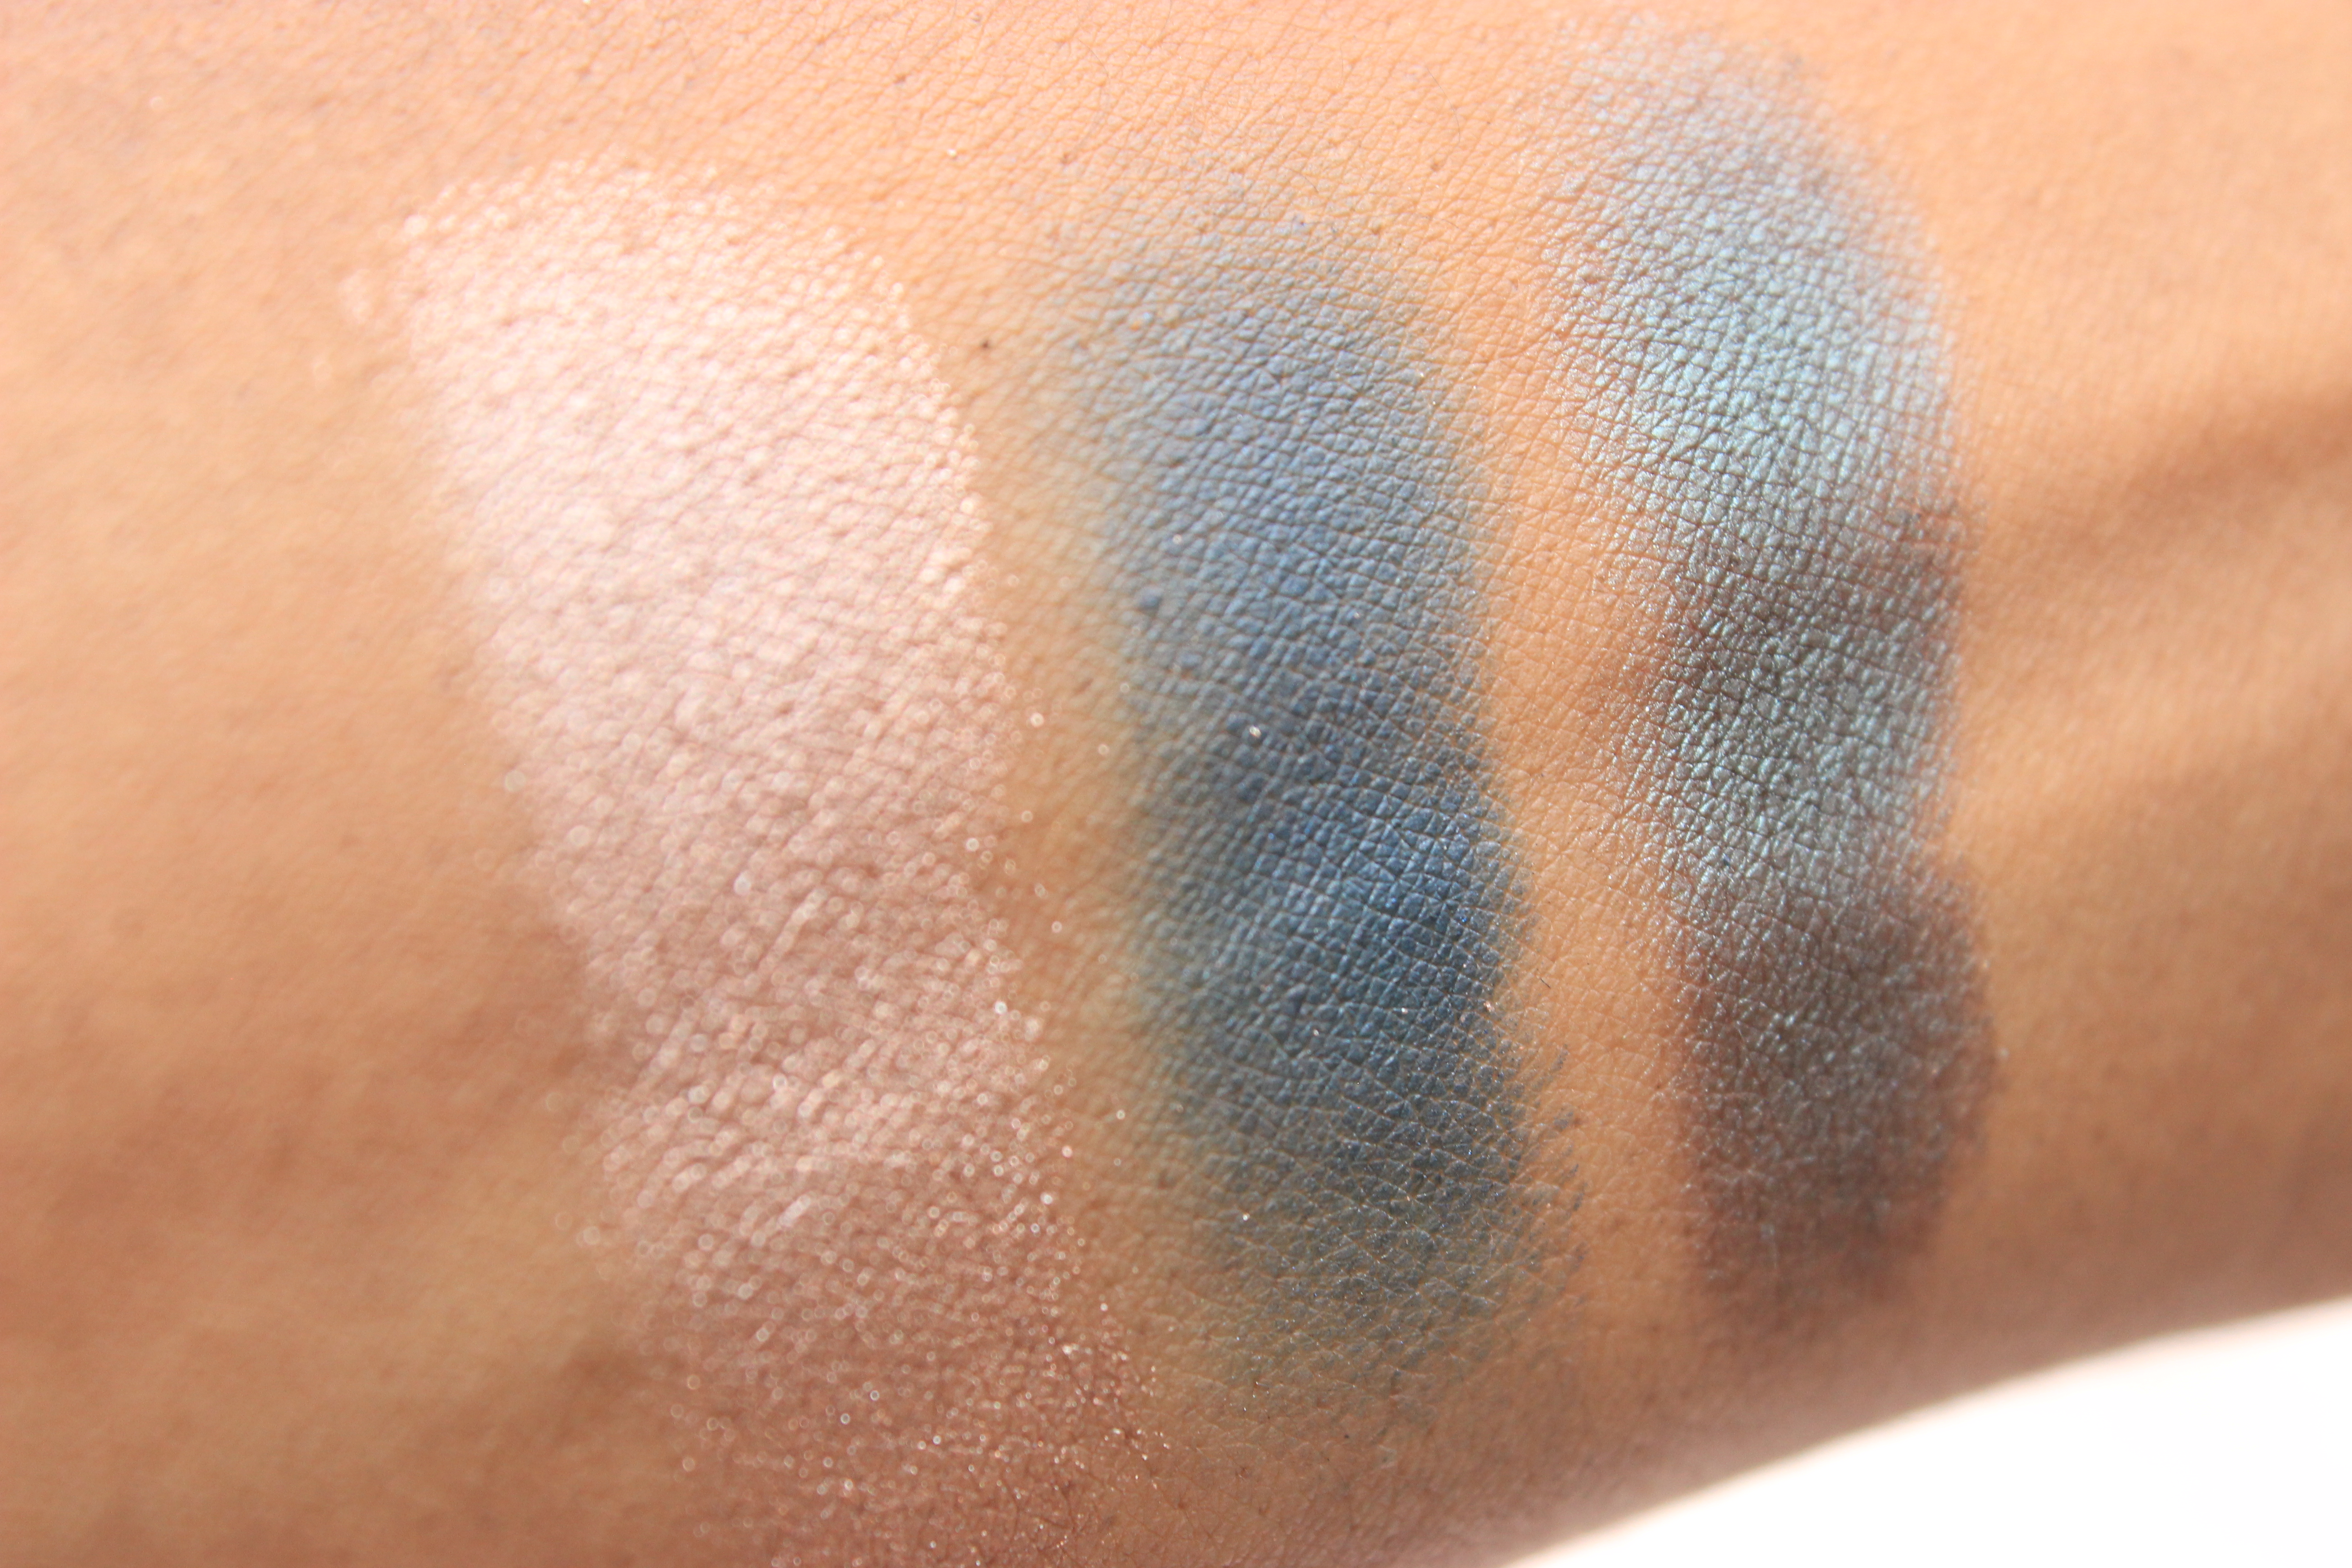 WetnWild-plaid-to-the-bone-eyeshadow-palette-makeup-review-wetnwild-fall-2016-collection-oohlalablog-